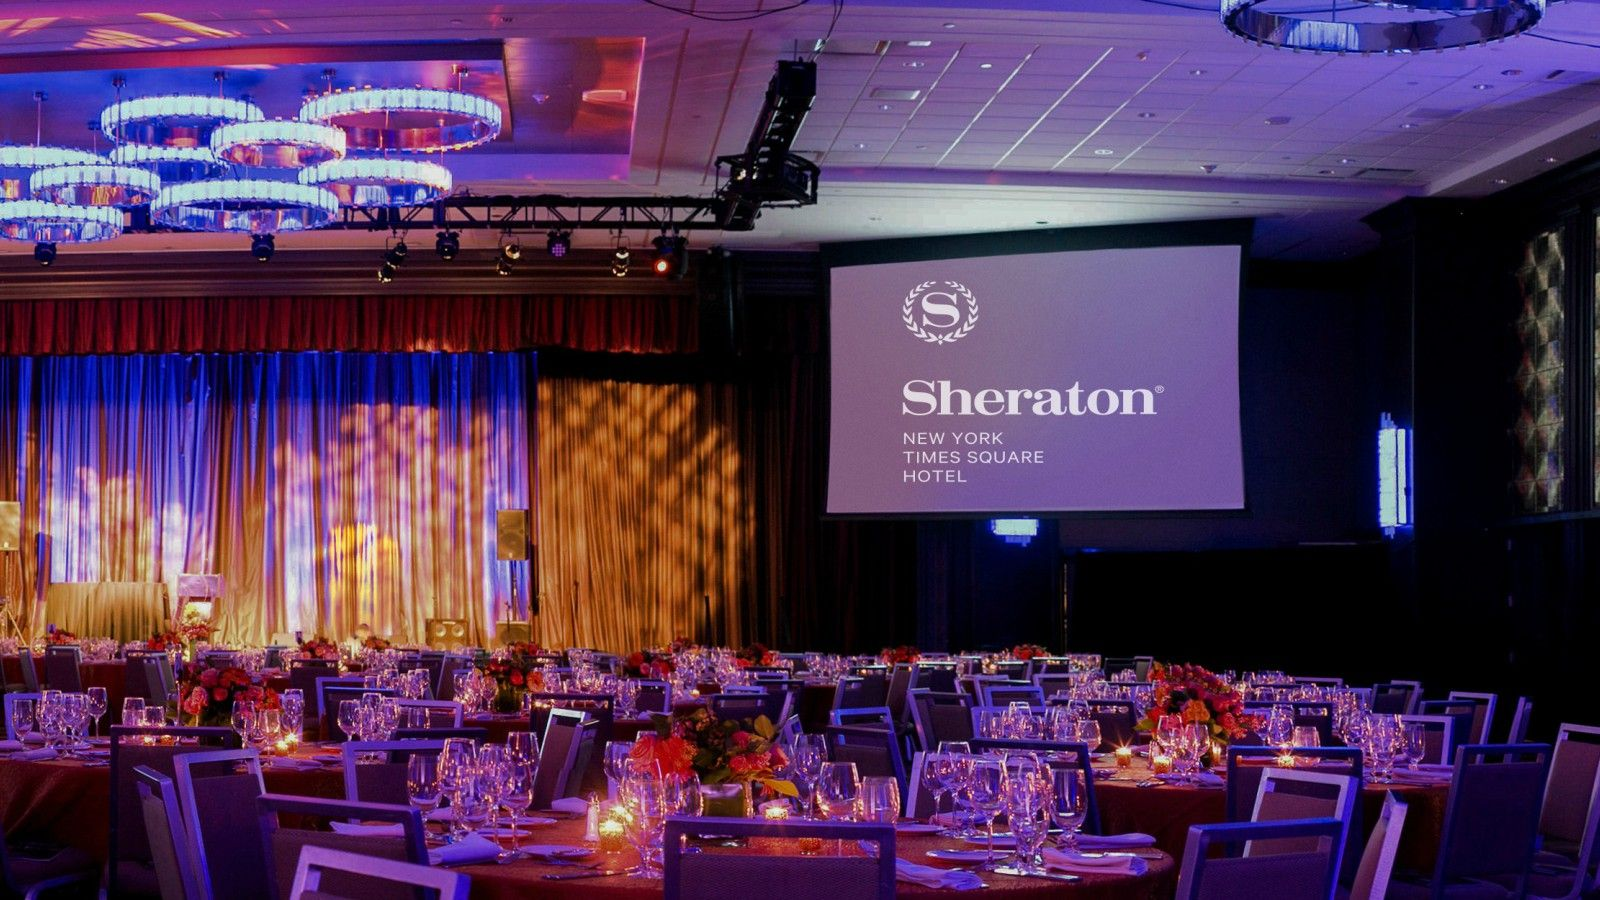 Sheraton New York Times Square Hotel - Meeting Space